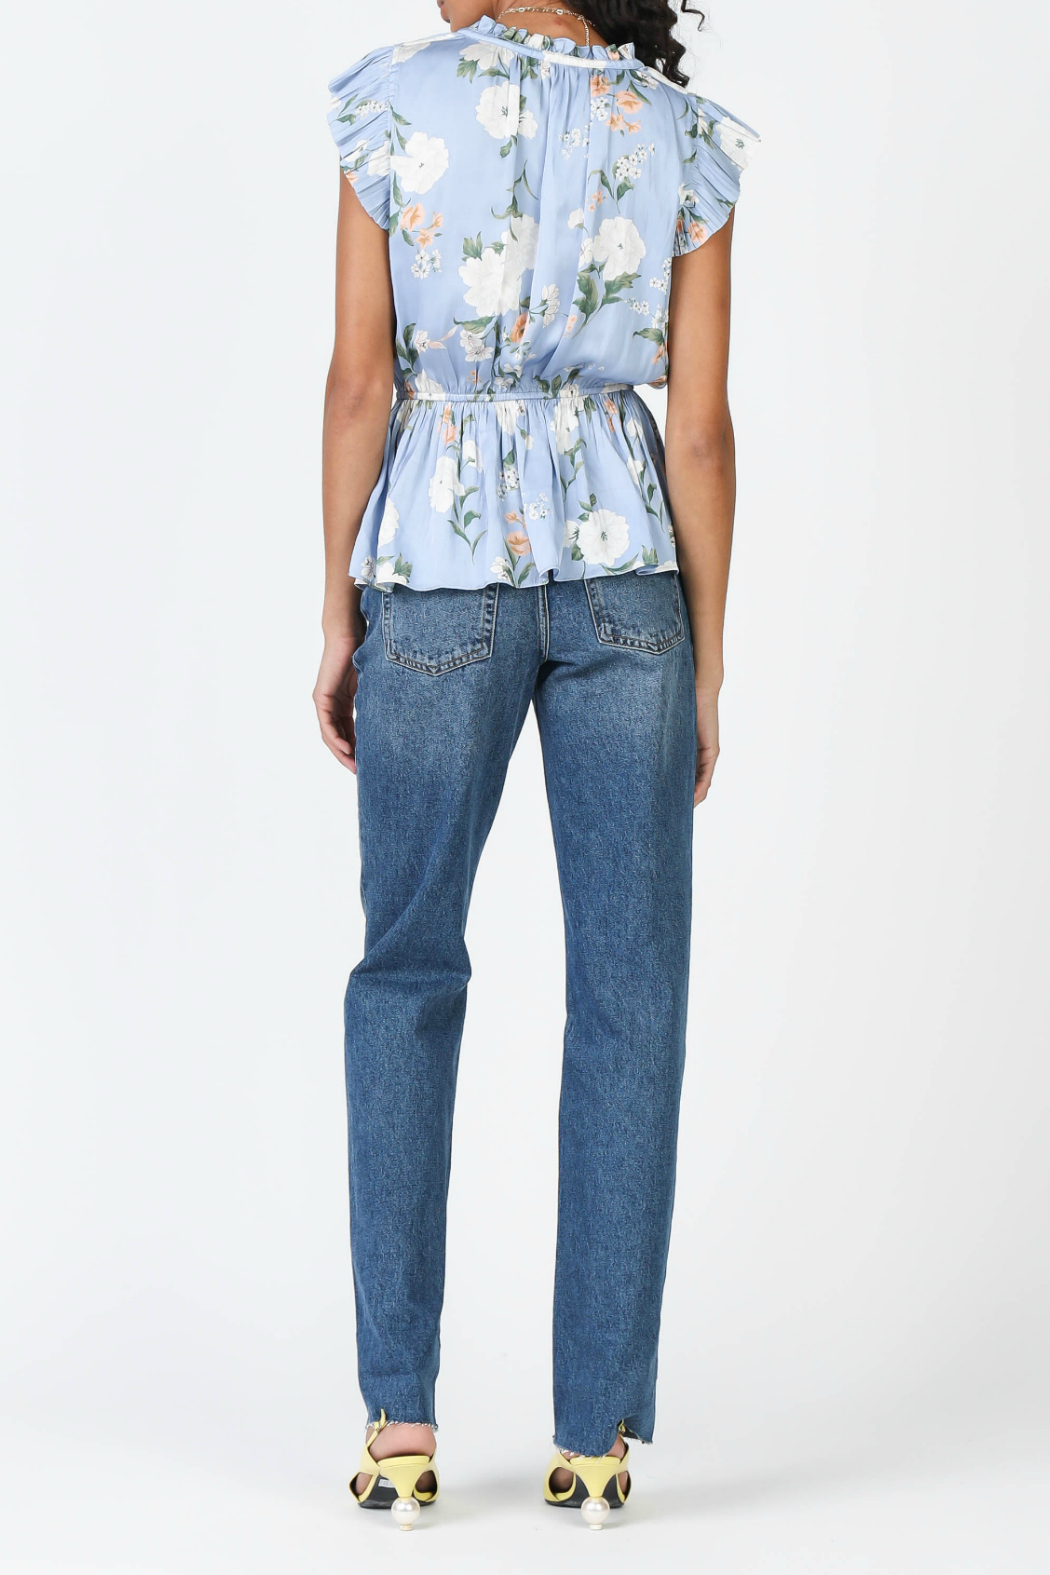 Current Air Floral print pleated top - Front Full Image